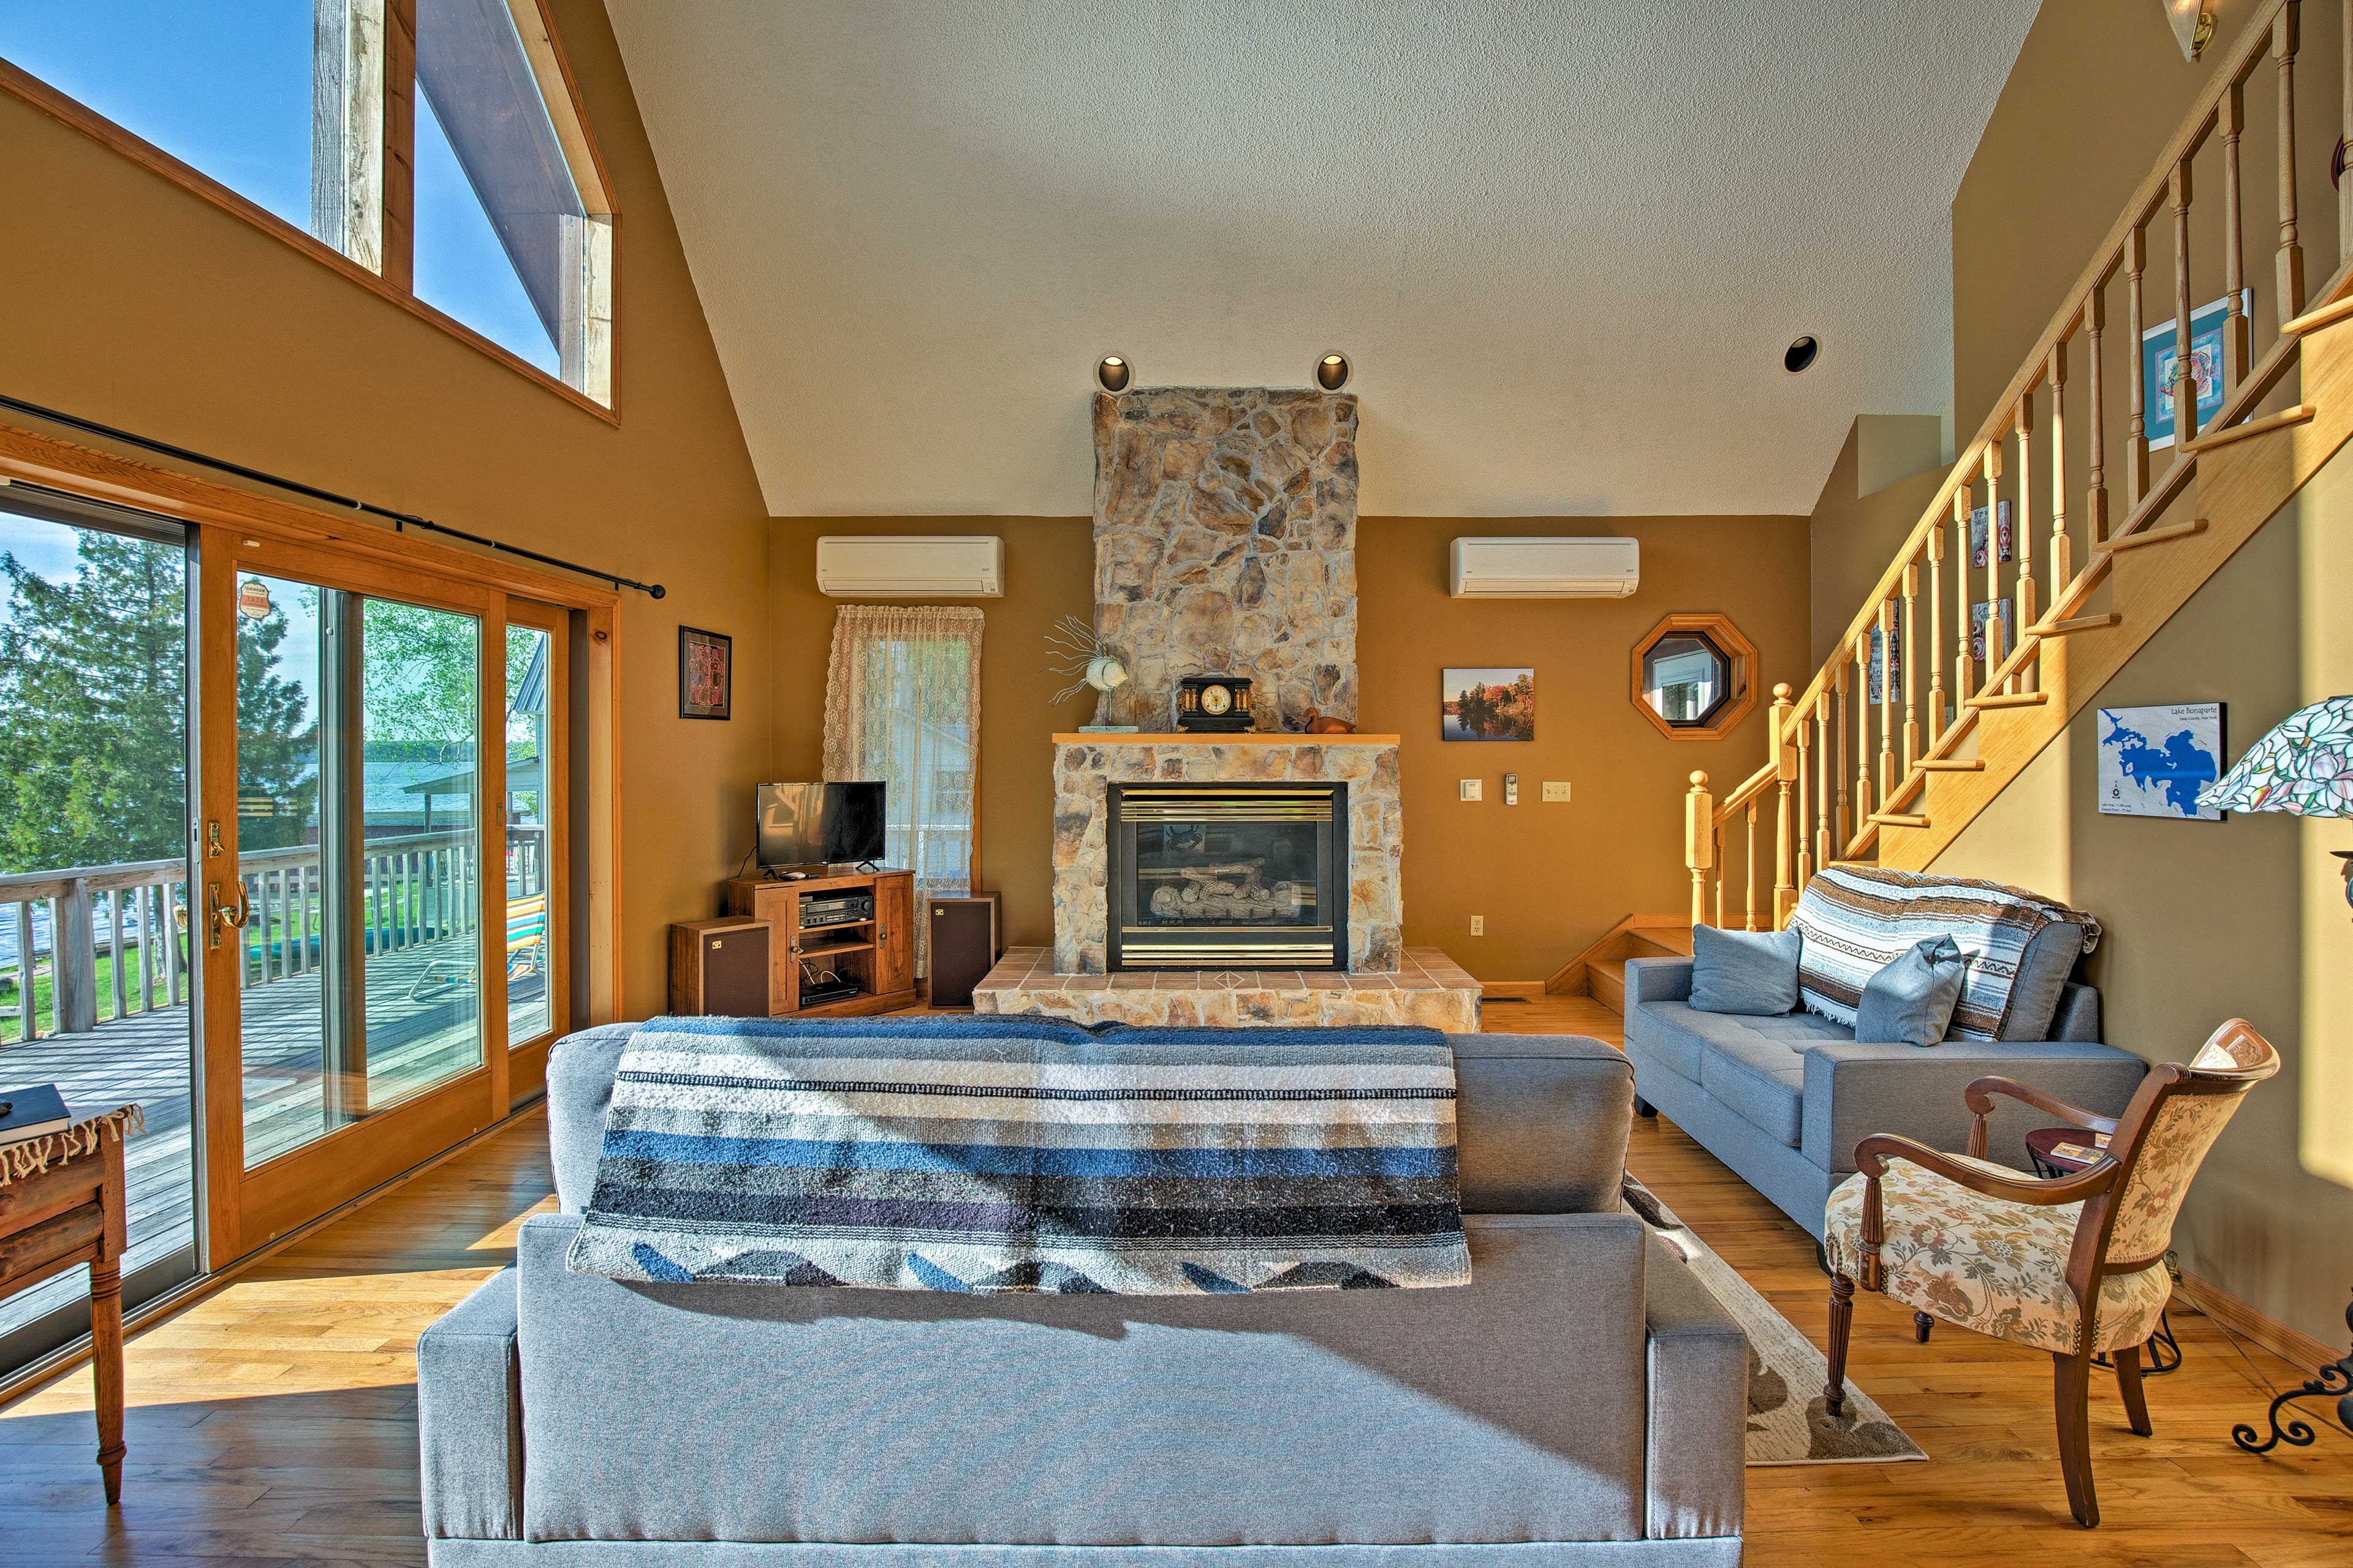 Turn on the gas fireplace, grab a seat on the sofas, and enjoy the views!